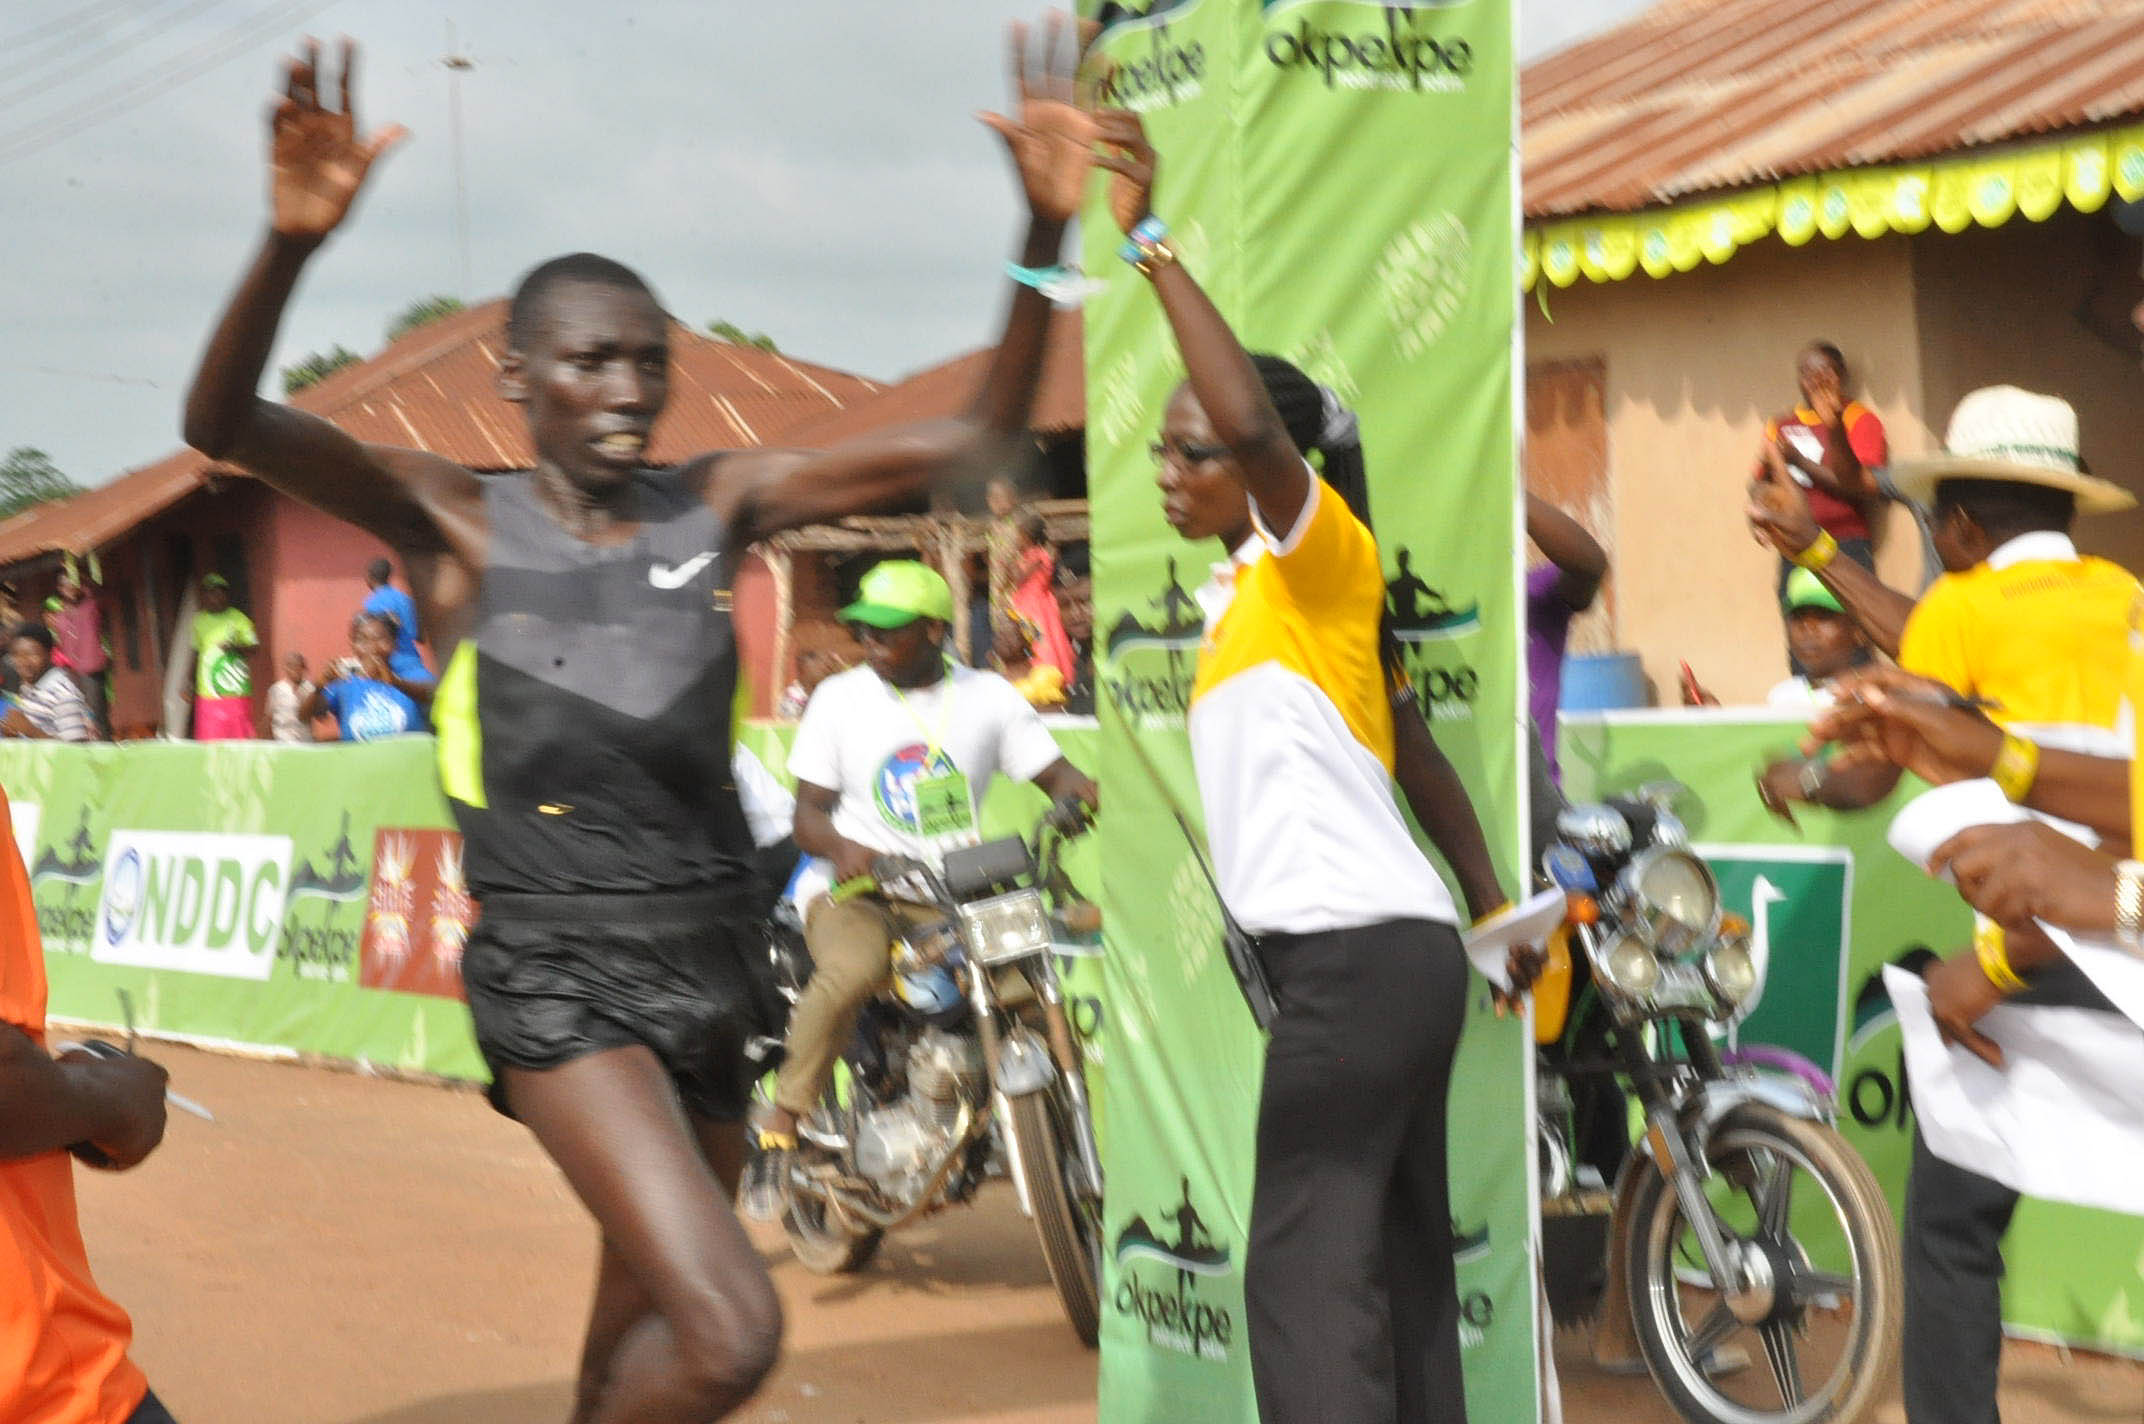 Screening,accreditation begin for Okpekpe Race